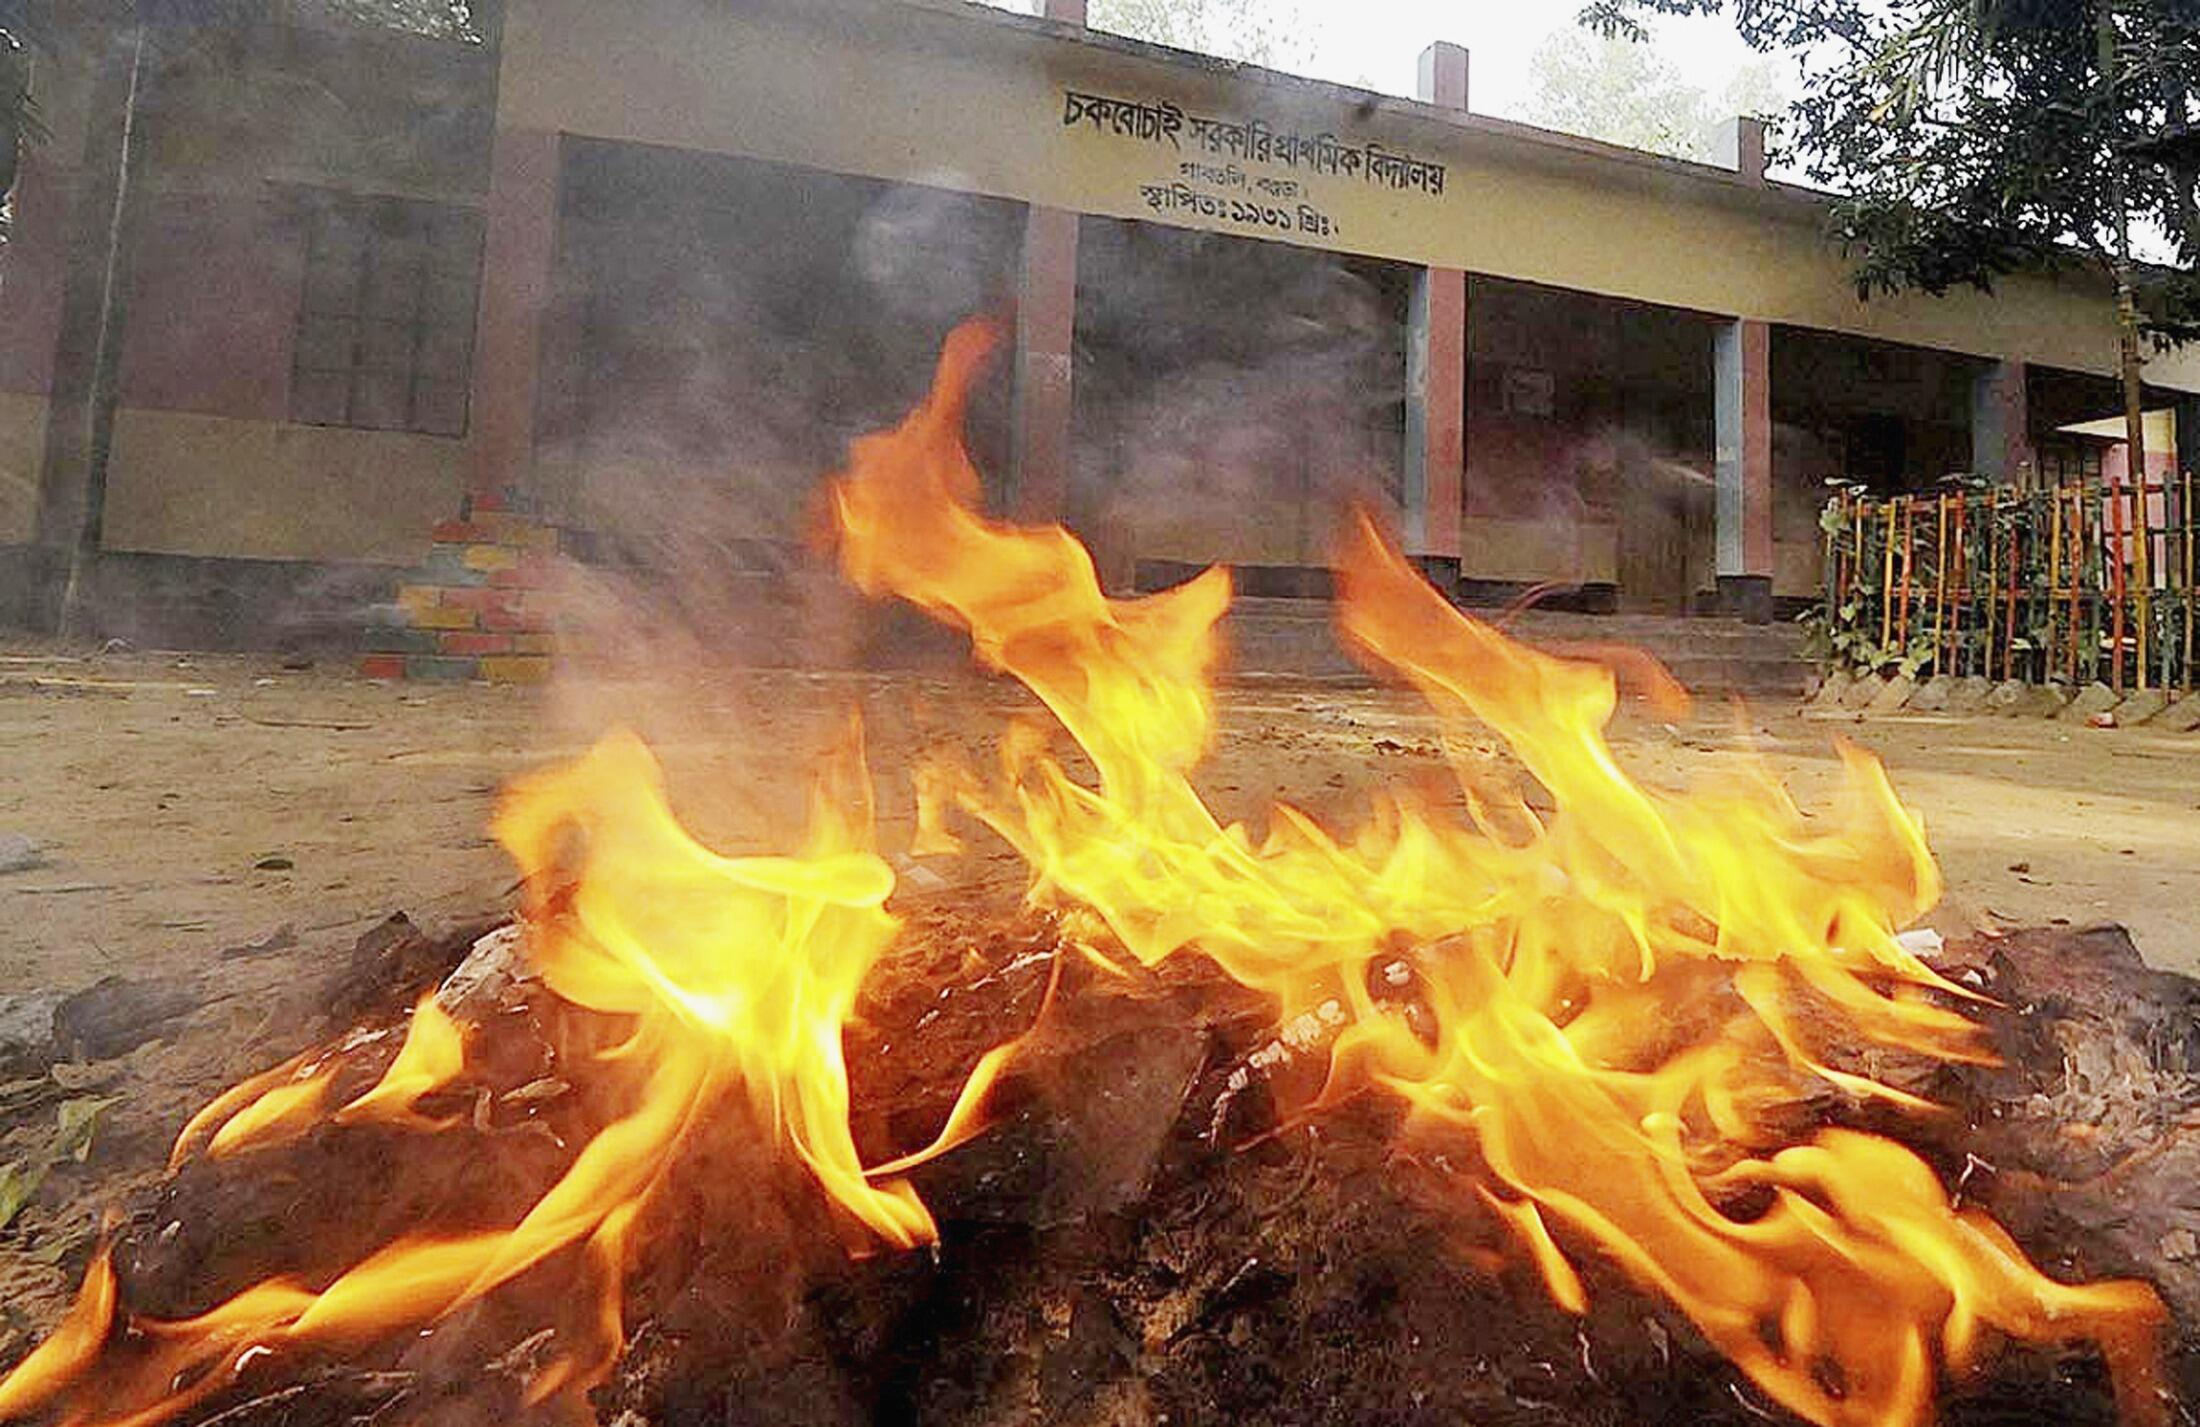 Election materials are set ablaze in front of a polling booth after an attack by protesters in Bogra January 5, 2014